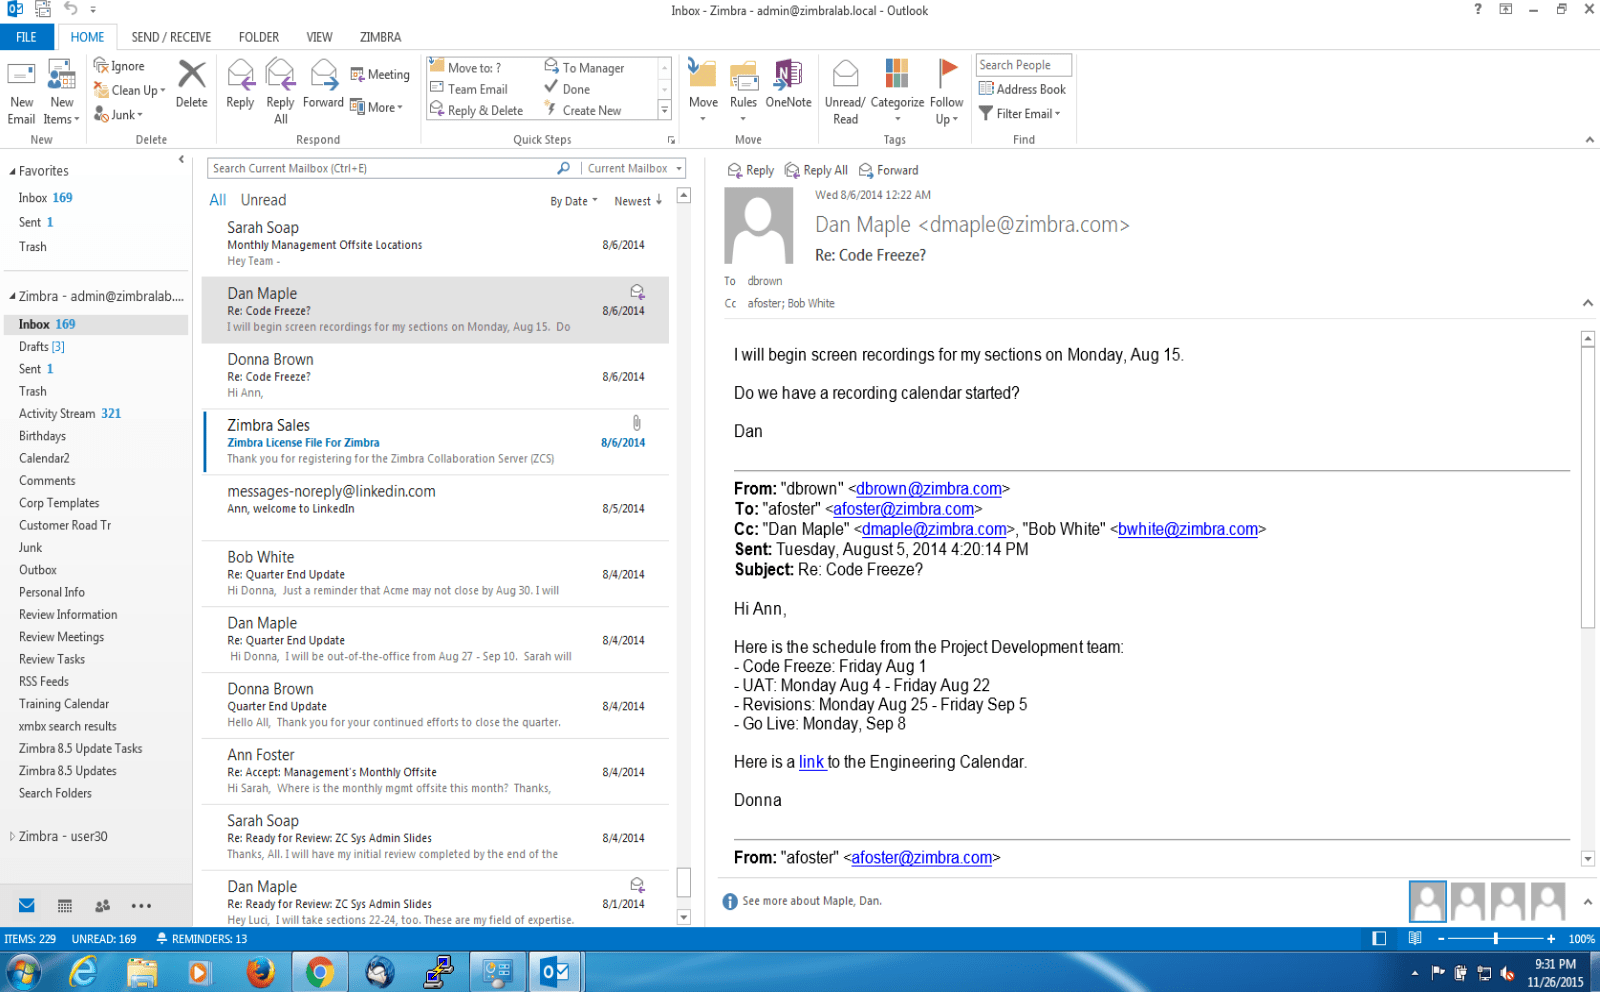 Create A New Profile In Outlook Create A New Outlook Profile Outlook Tips Microsoft Outlook Sync Zco Zimbra Connector For Outlook